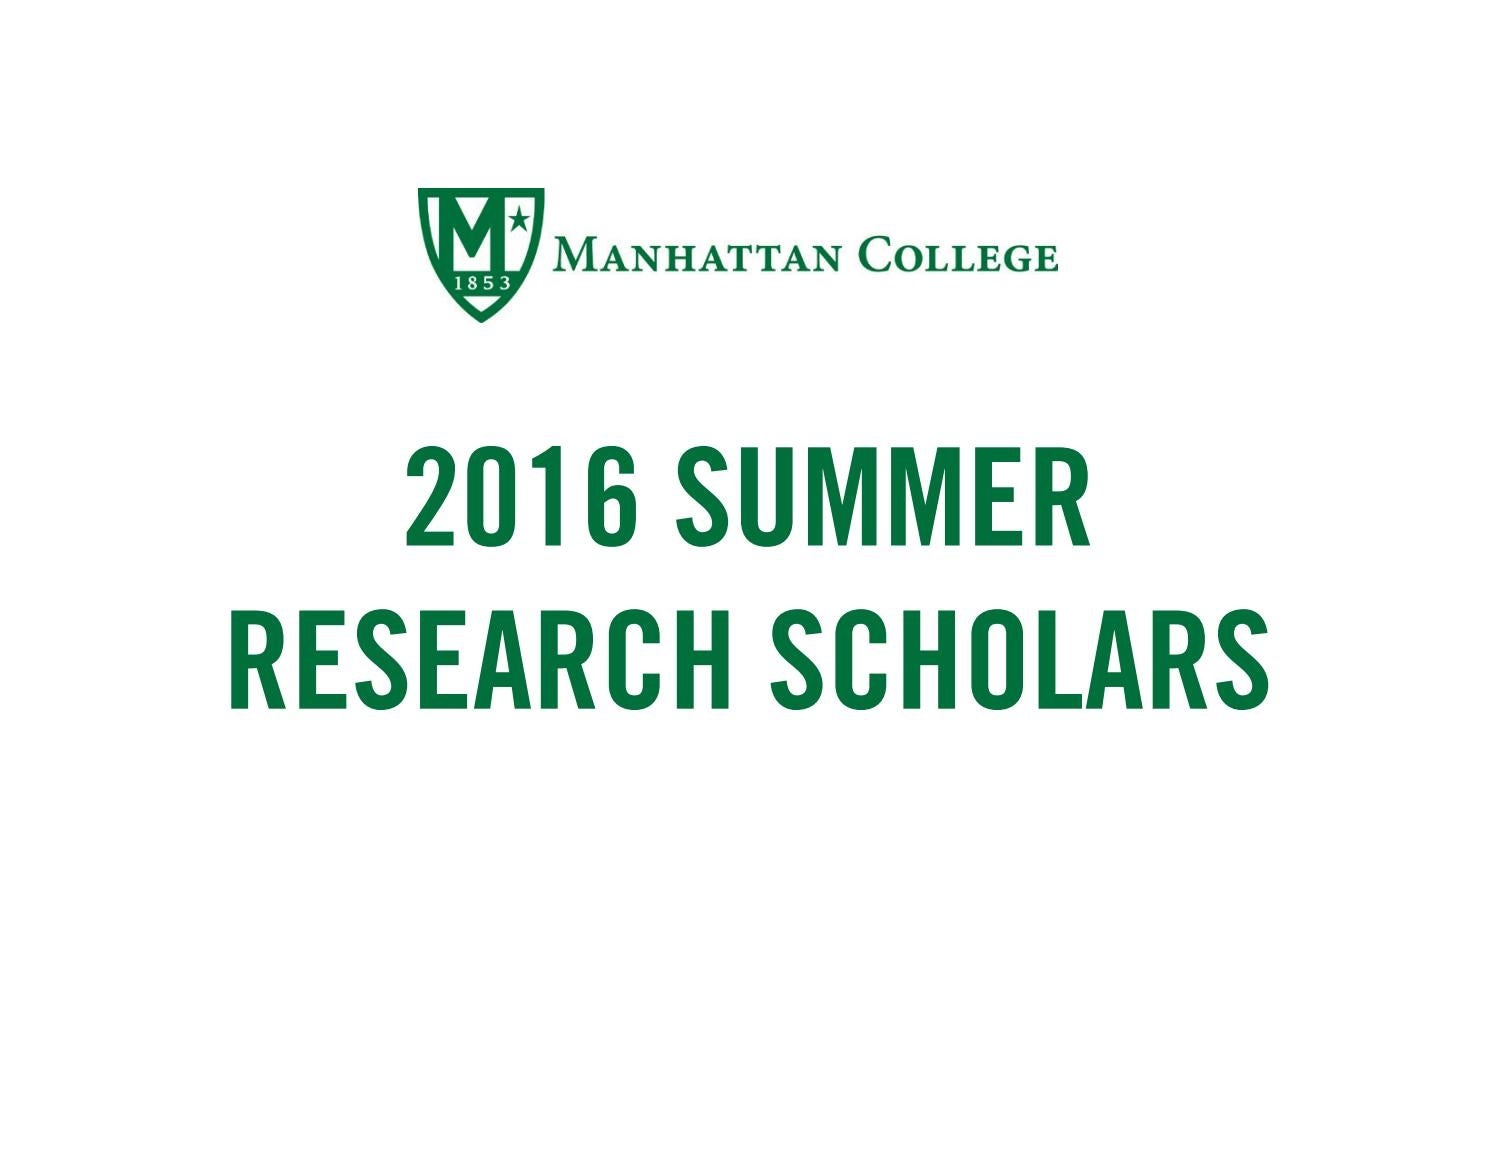 Summer research scholars 2016 by manhattan college issuu fandeluxe Choice Image